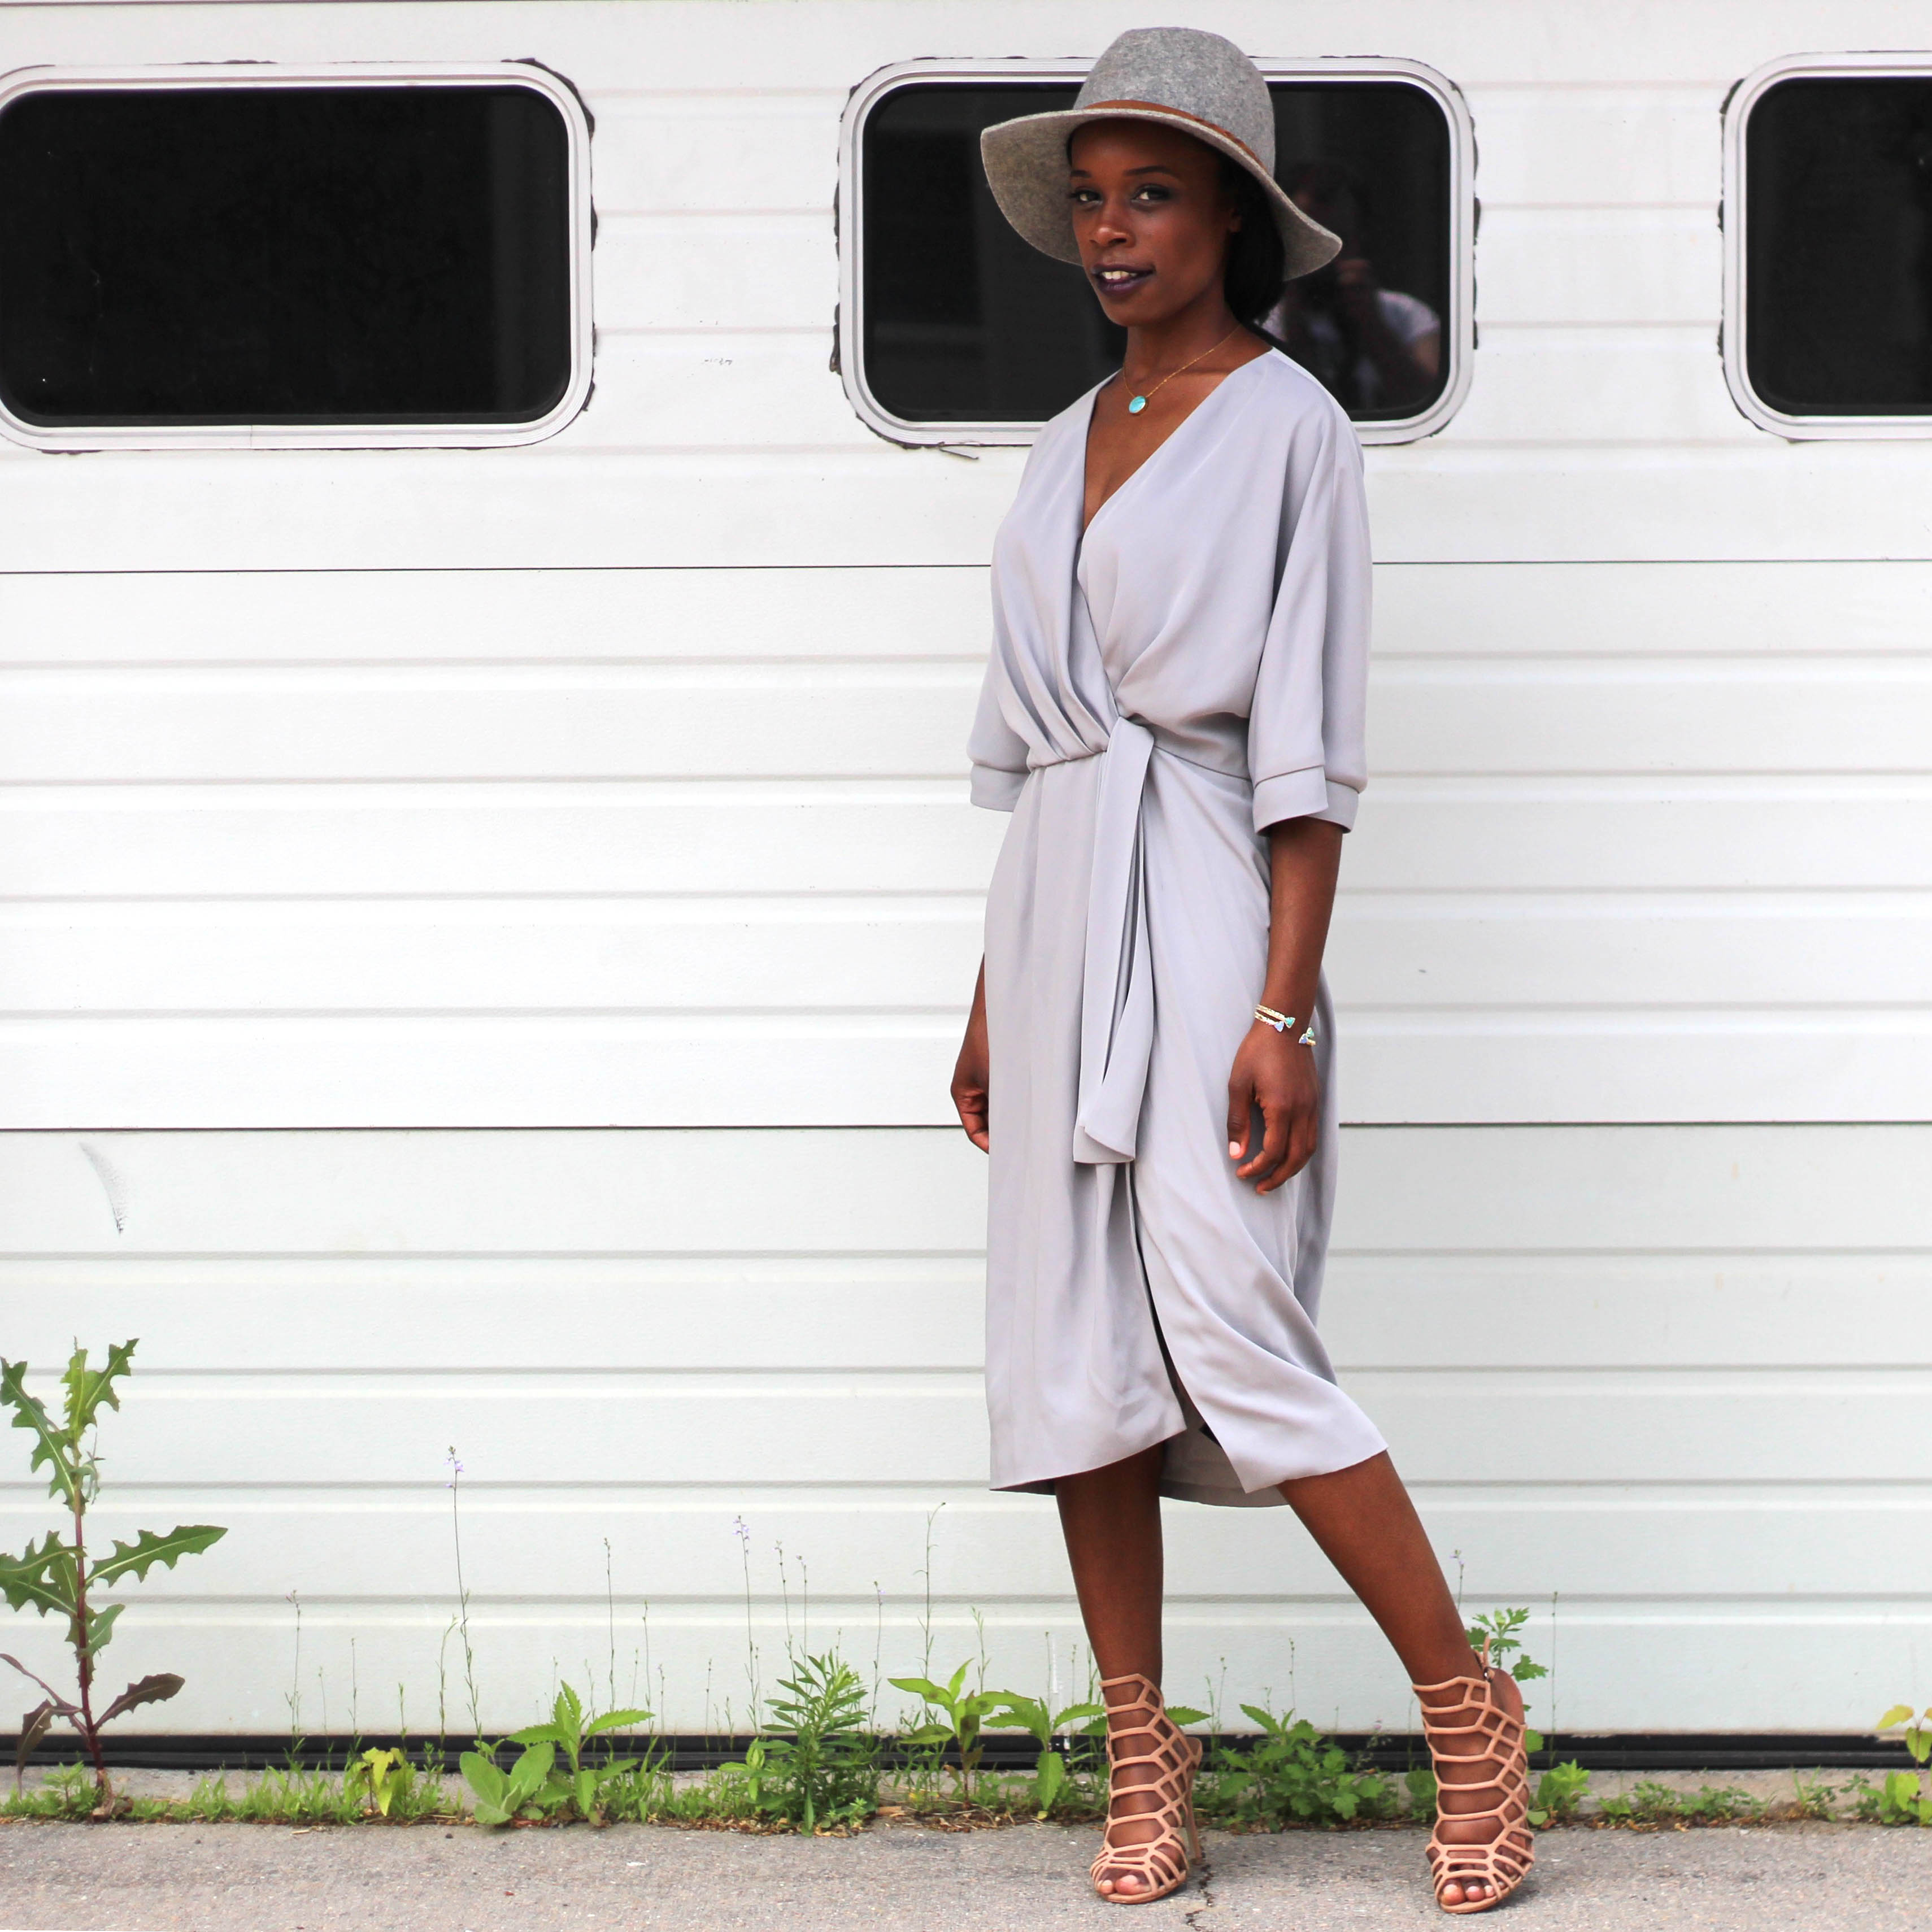 74e8f1e98b Dress: Rent the Runway | Shoes: Steve Madden | Hat: Target | Bracelets:  Kendra Scott (similar)